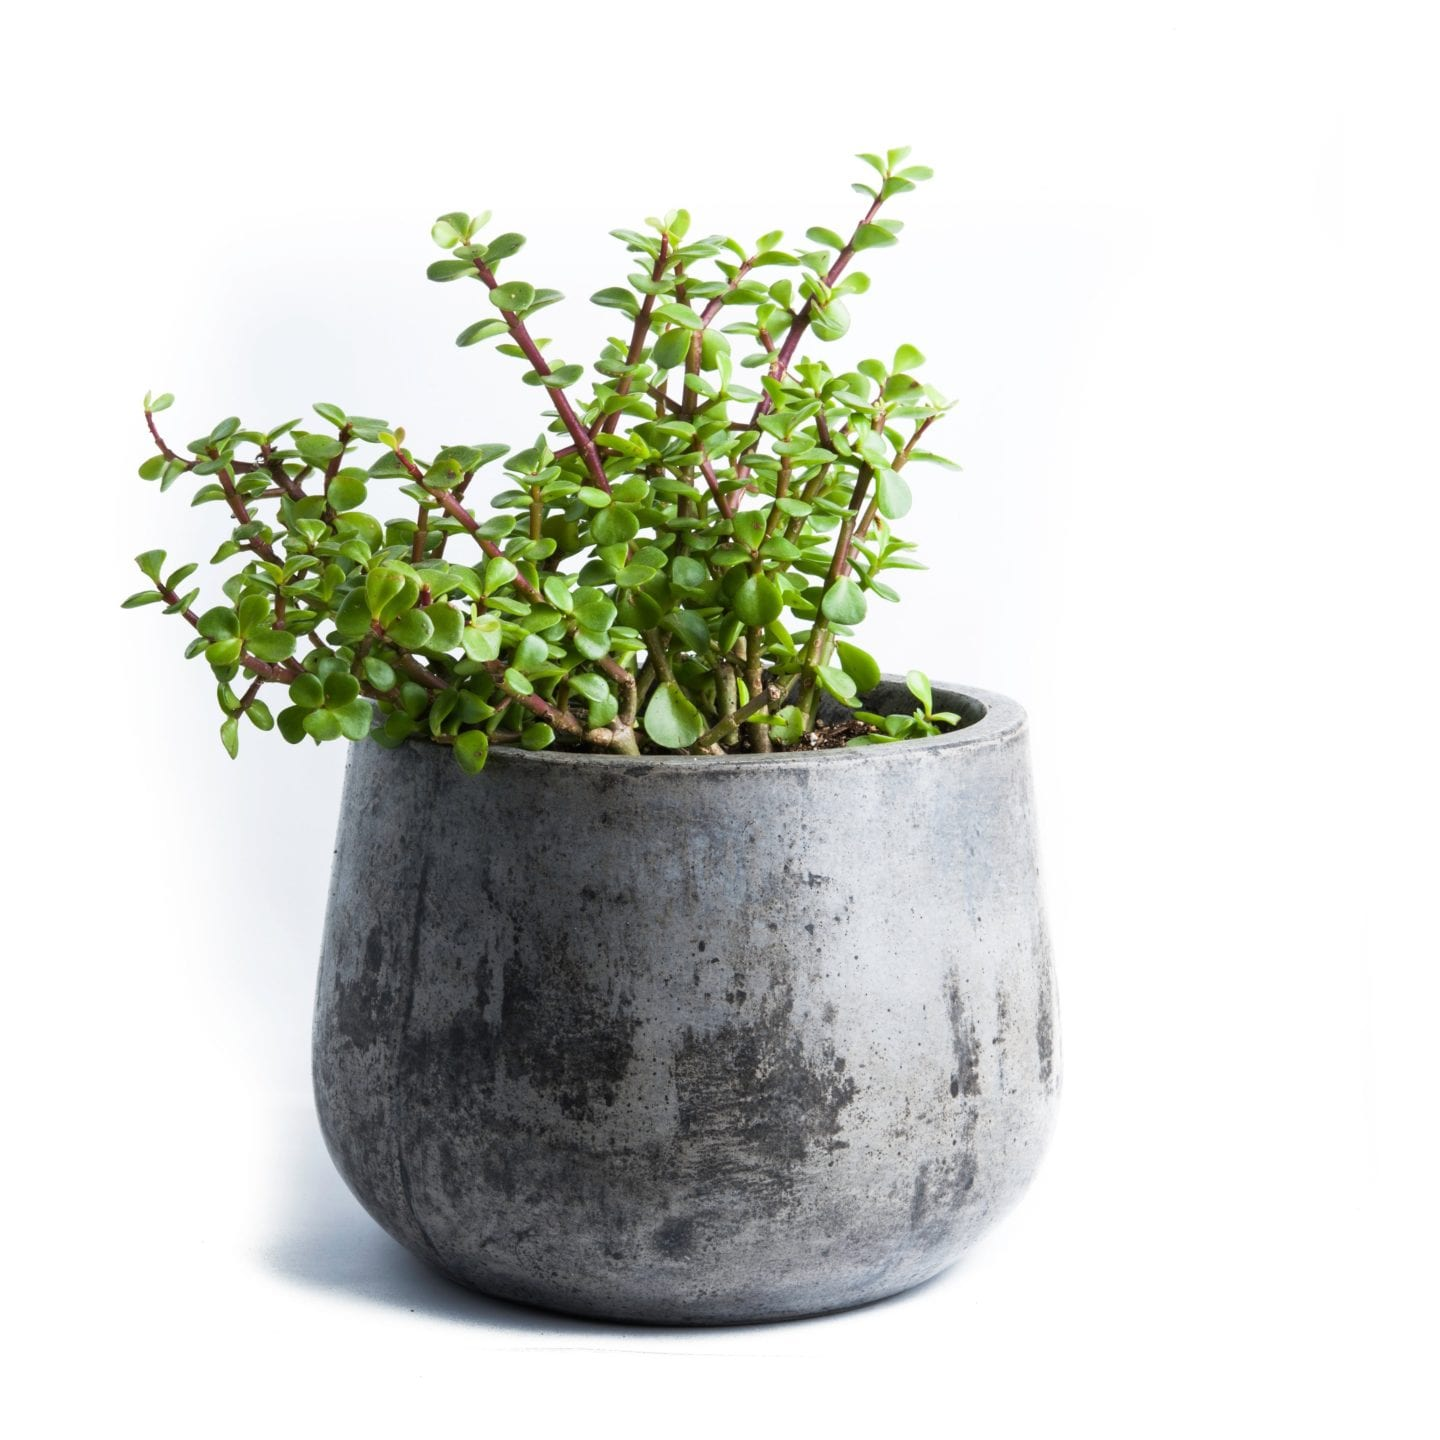 Cement planter with greenery.